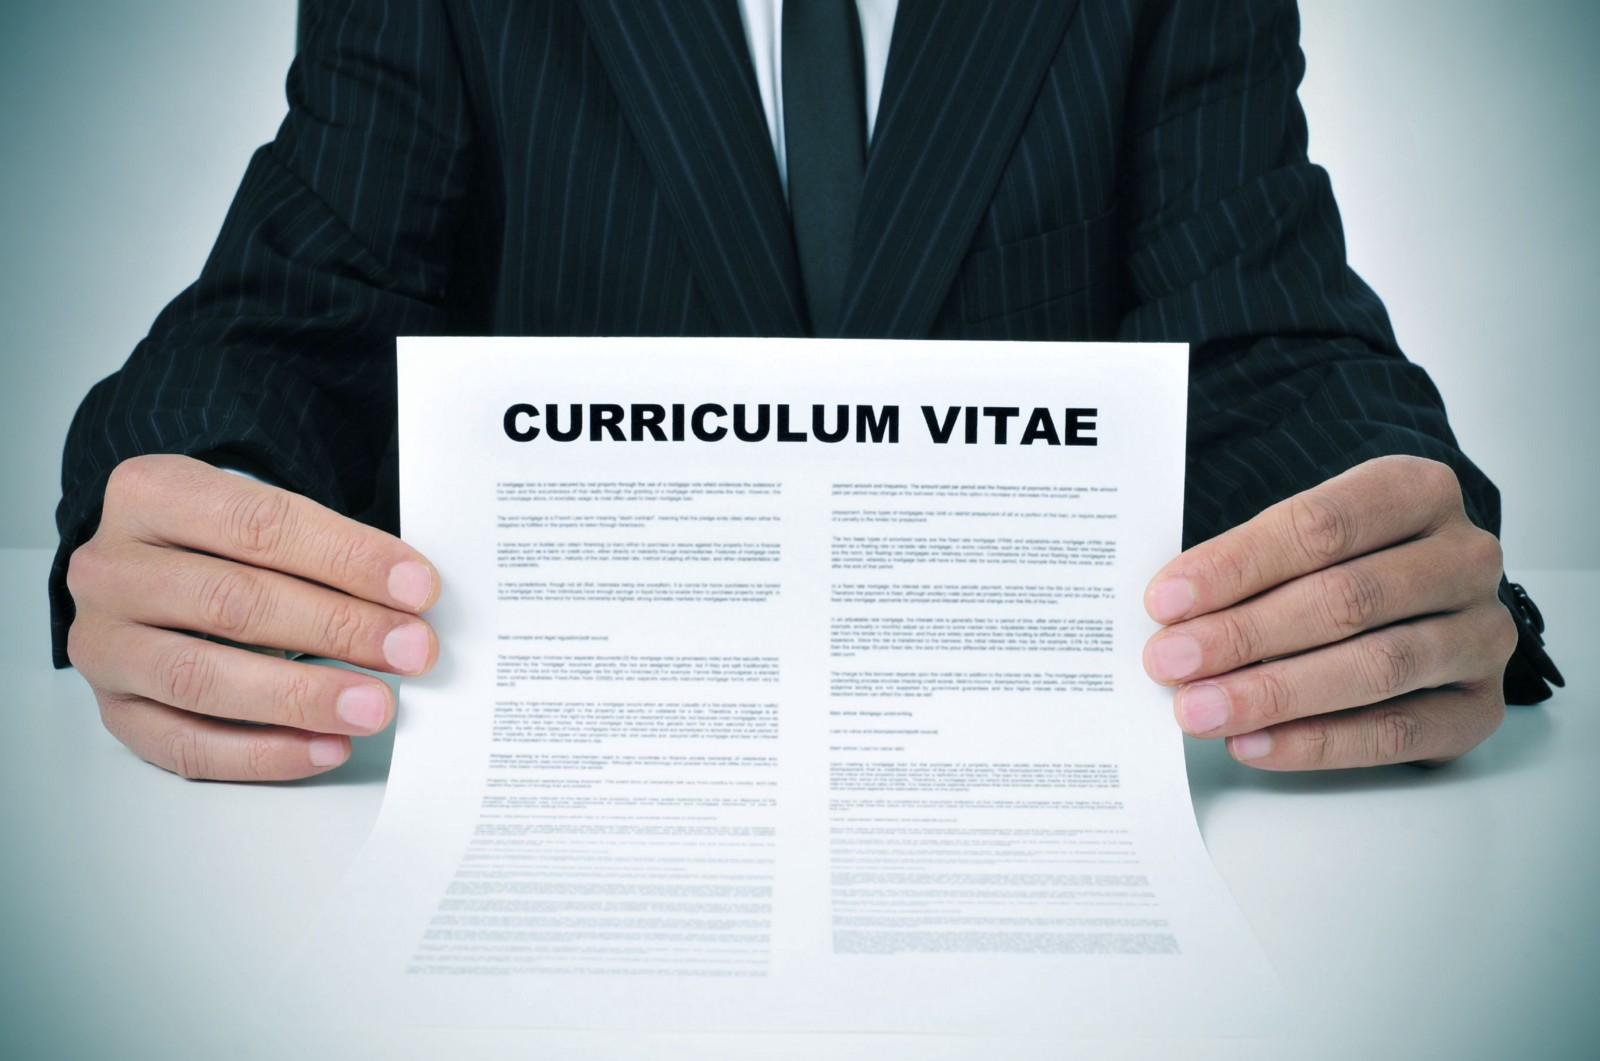 curriculum vitae chain wants to maximize job seekers potential by providing free cv templates